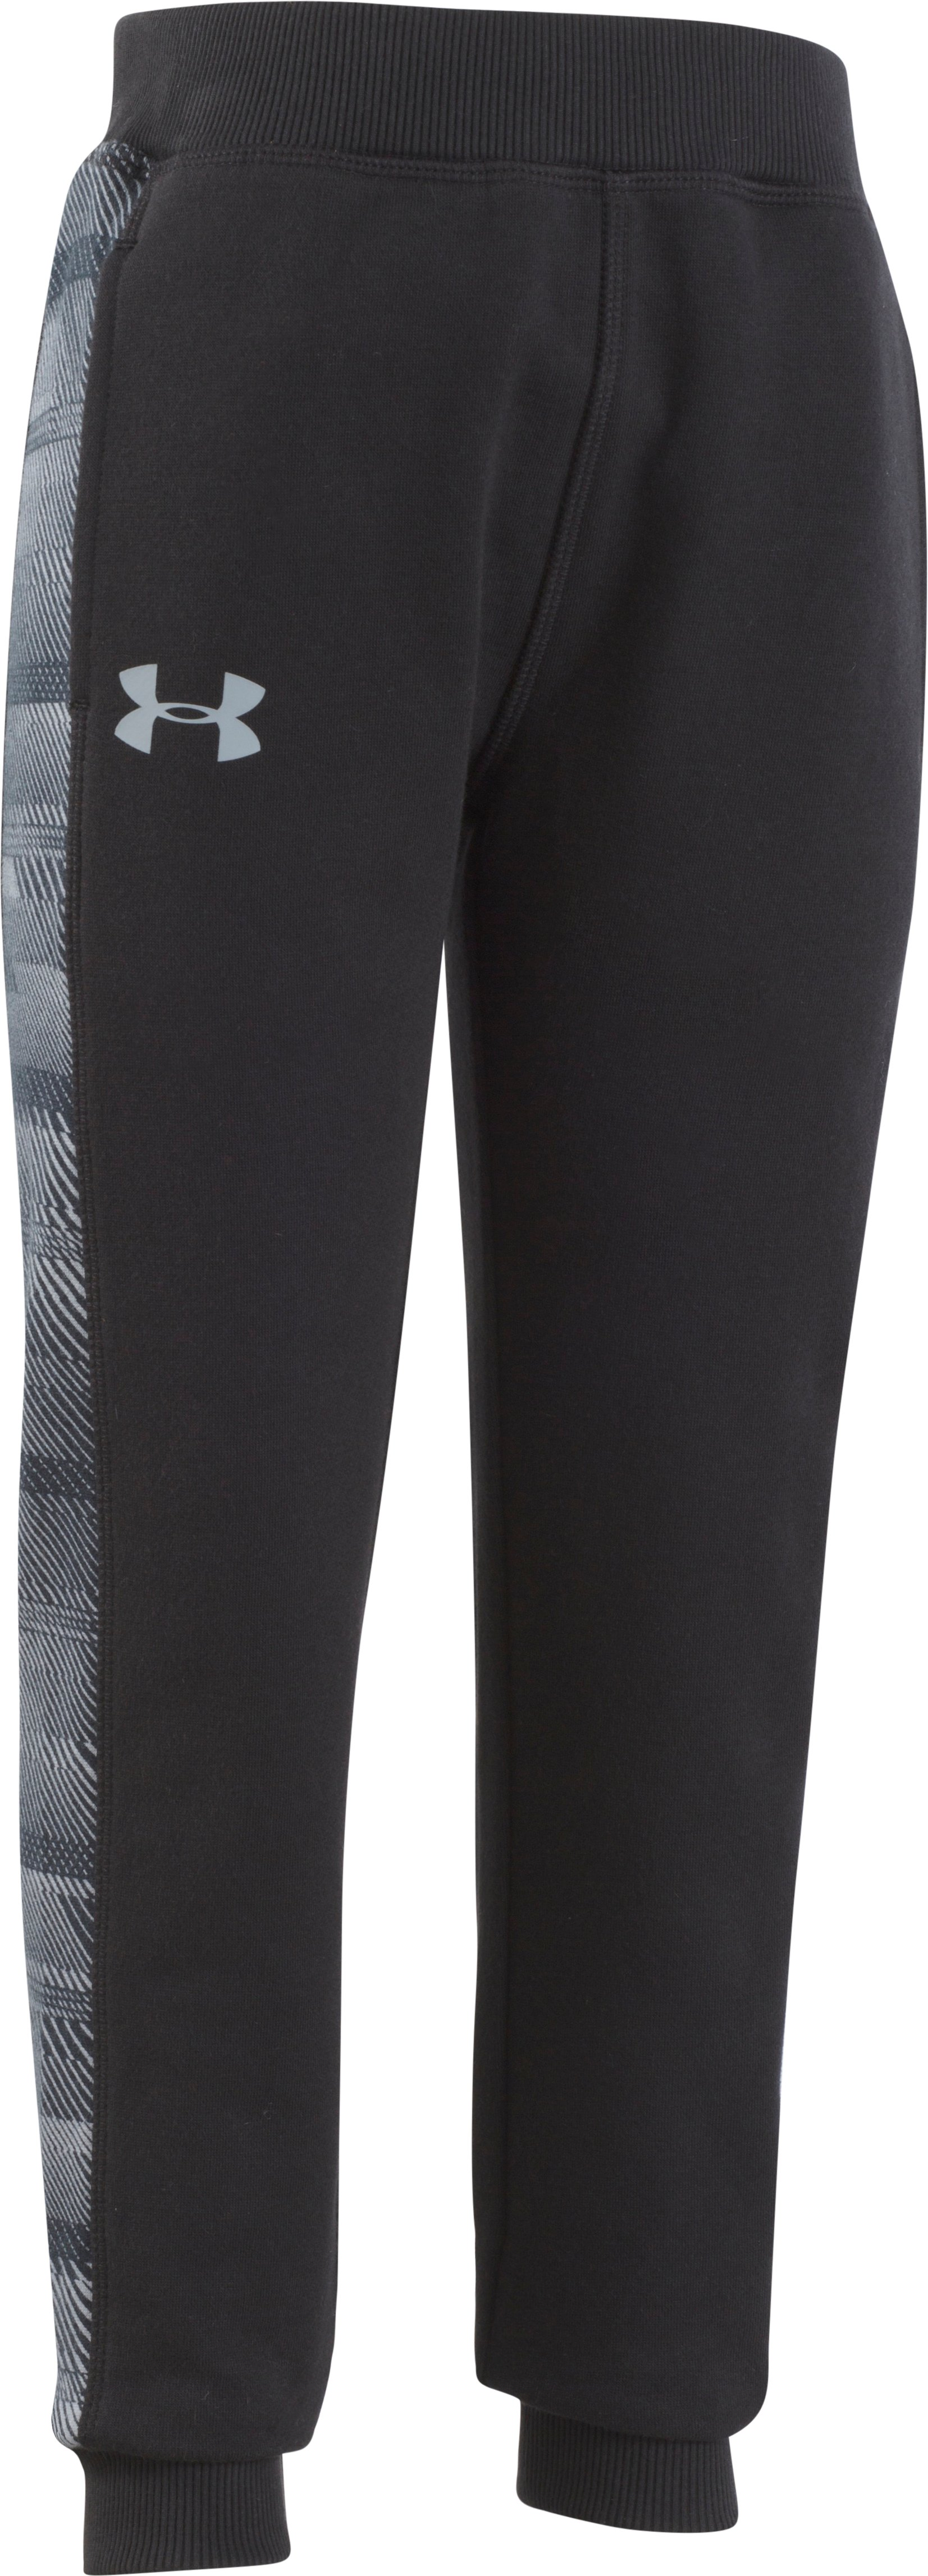 Boys' Pre-School UA Threadborne Pants, Black , Laydown